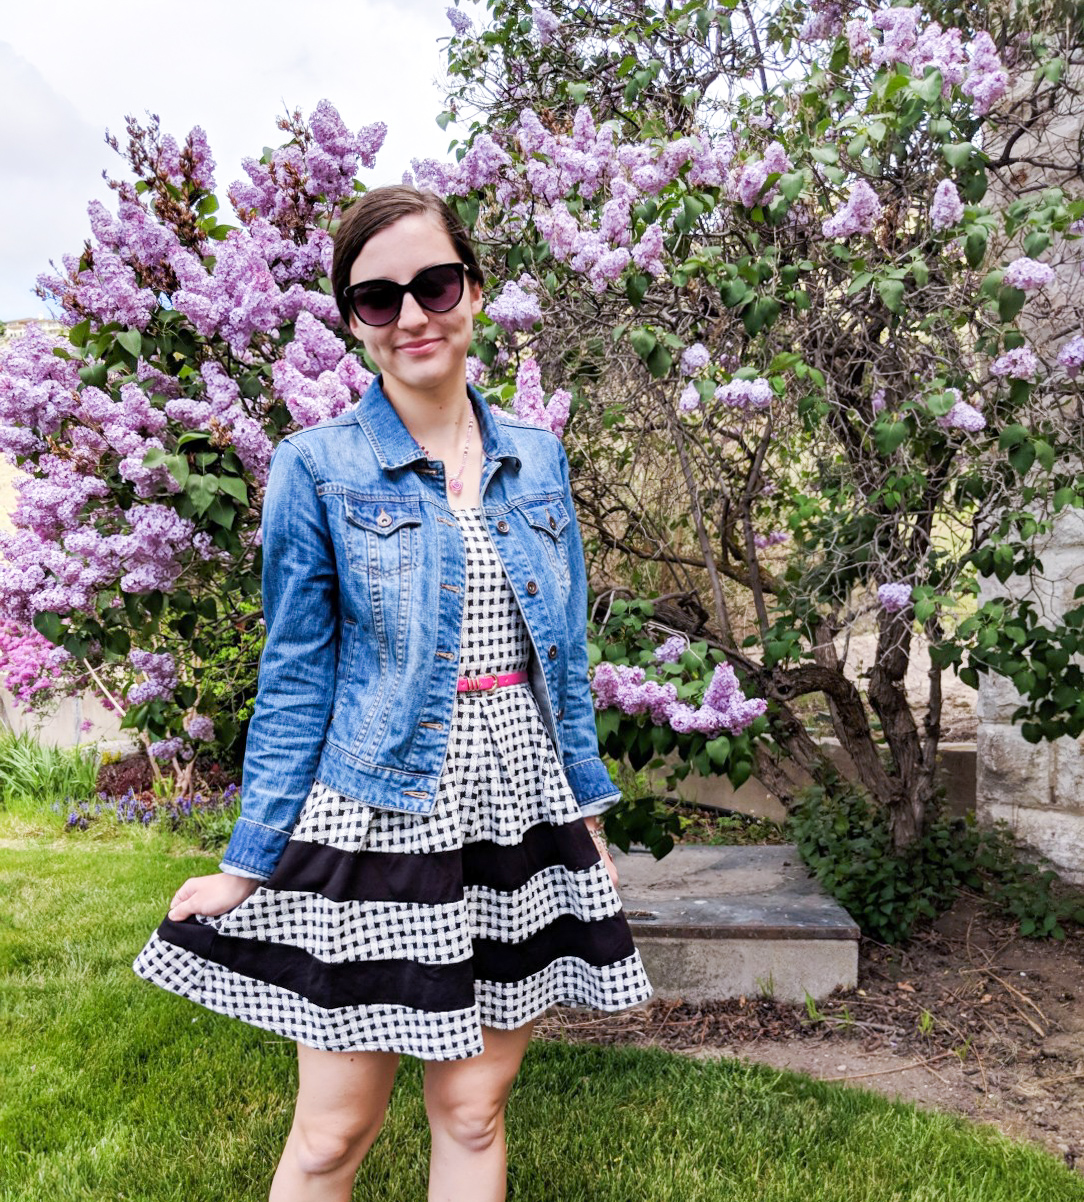 denim jacket, gingham dress, pink belt, purple flowers